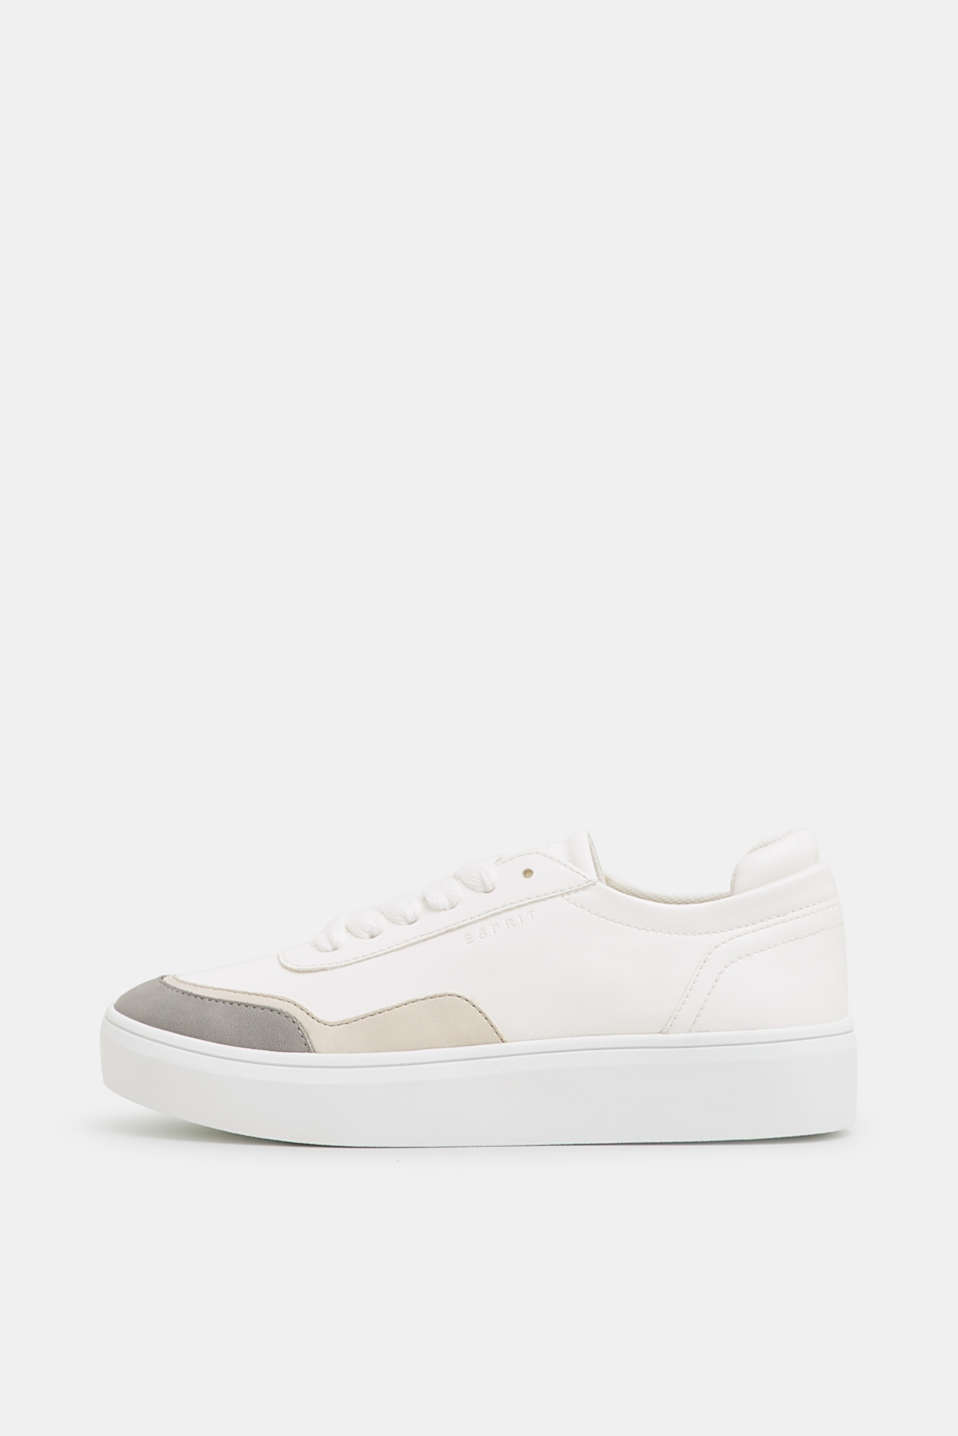 Esprit - Trend-Sneaker in Leder-Optik